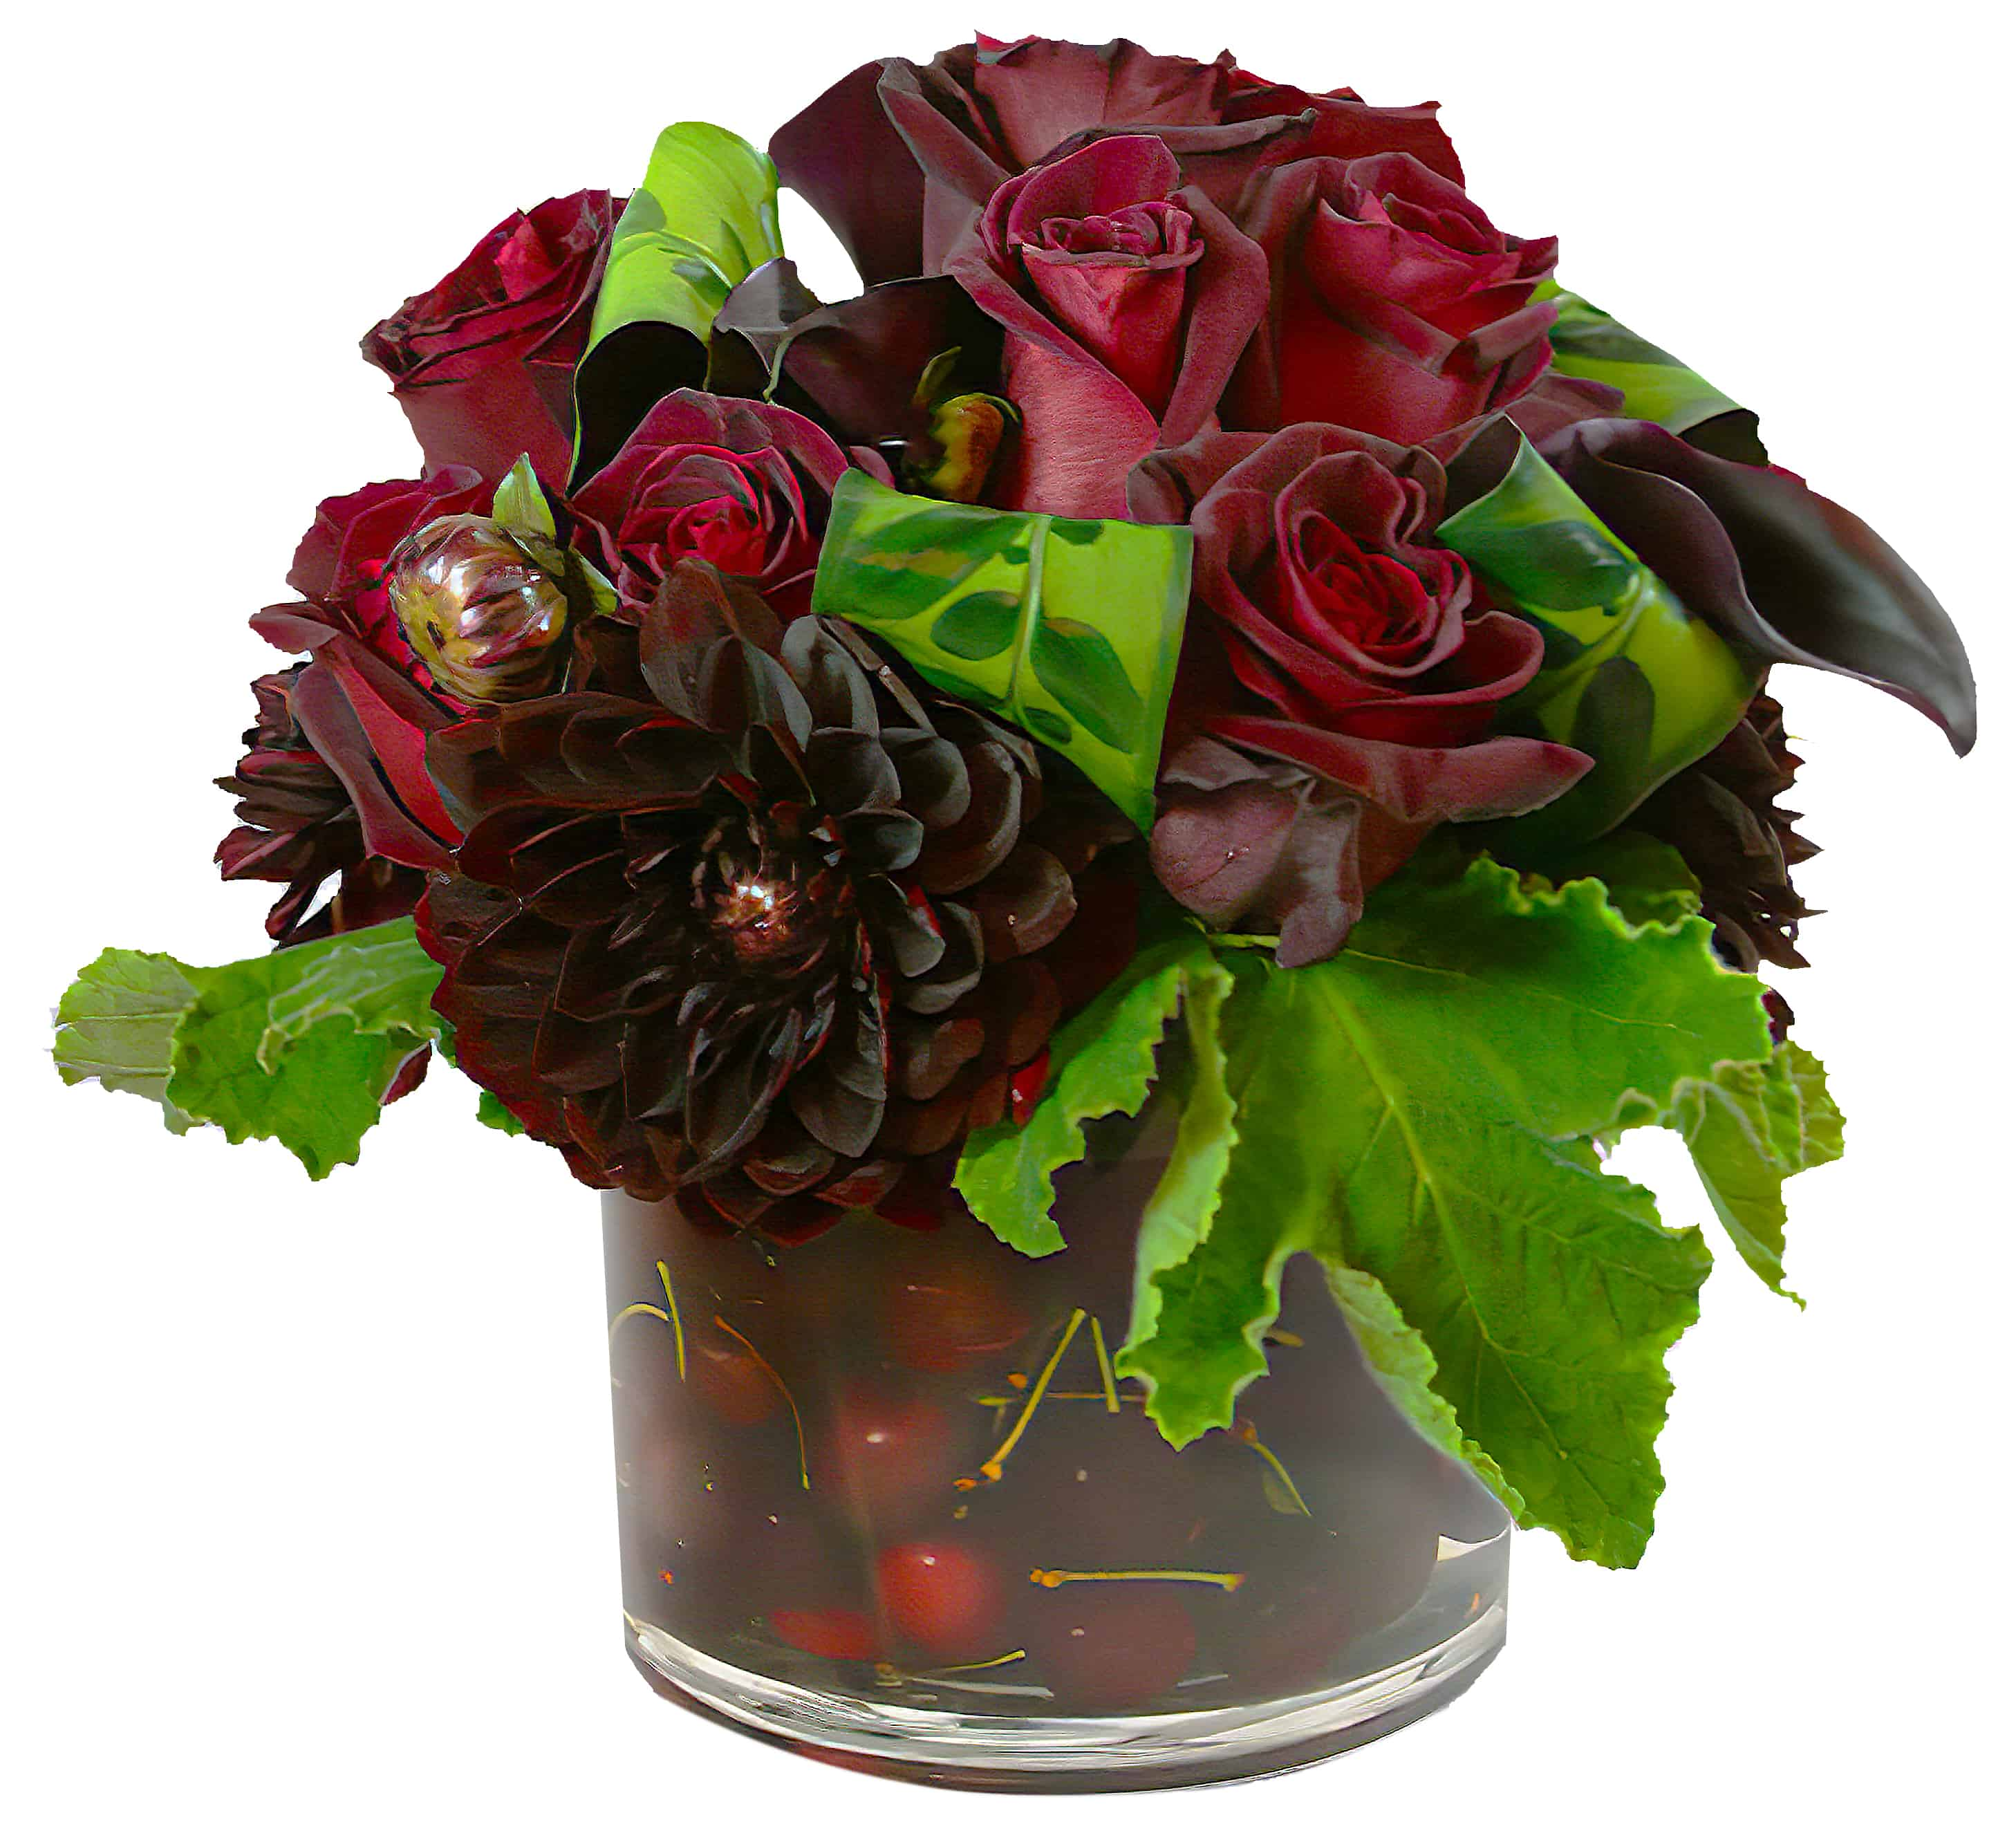 Conditor with Cherries - Flower Arrangement